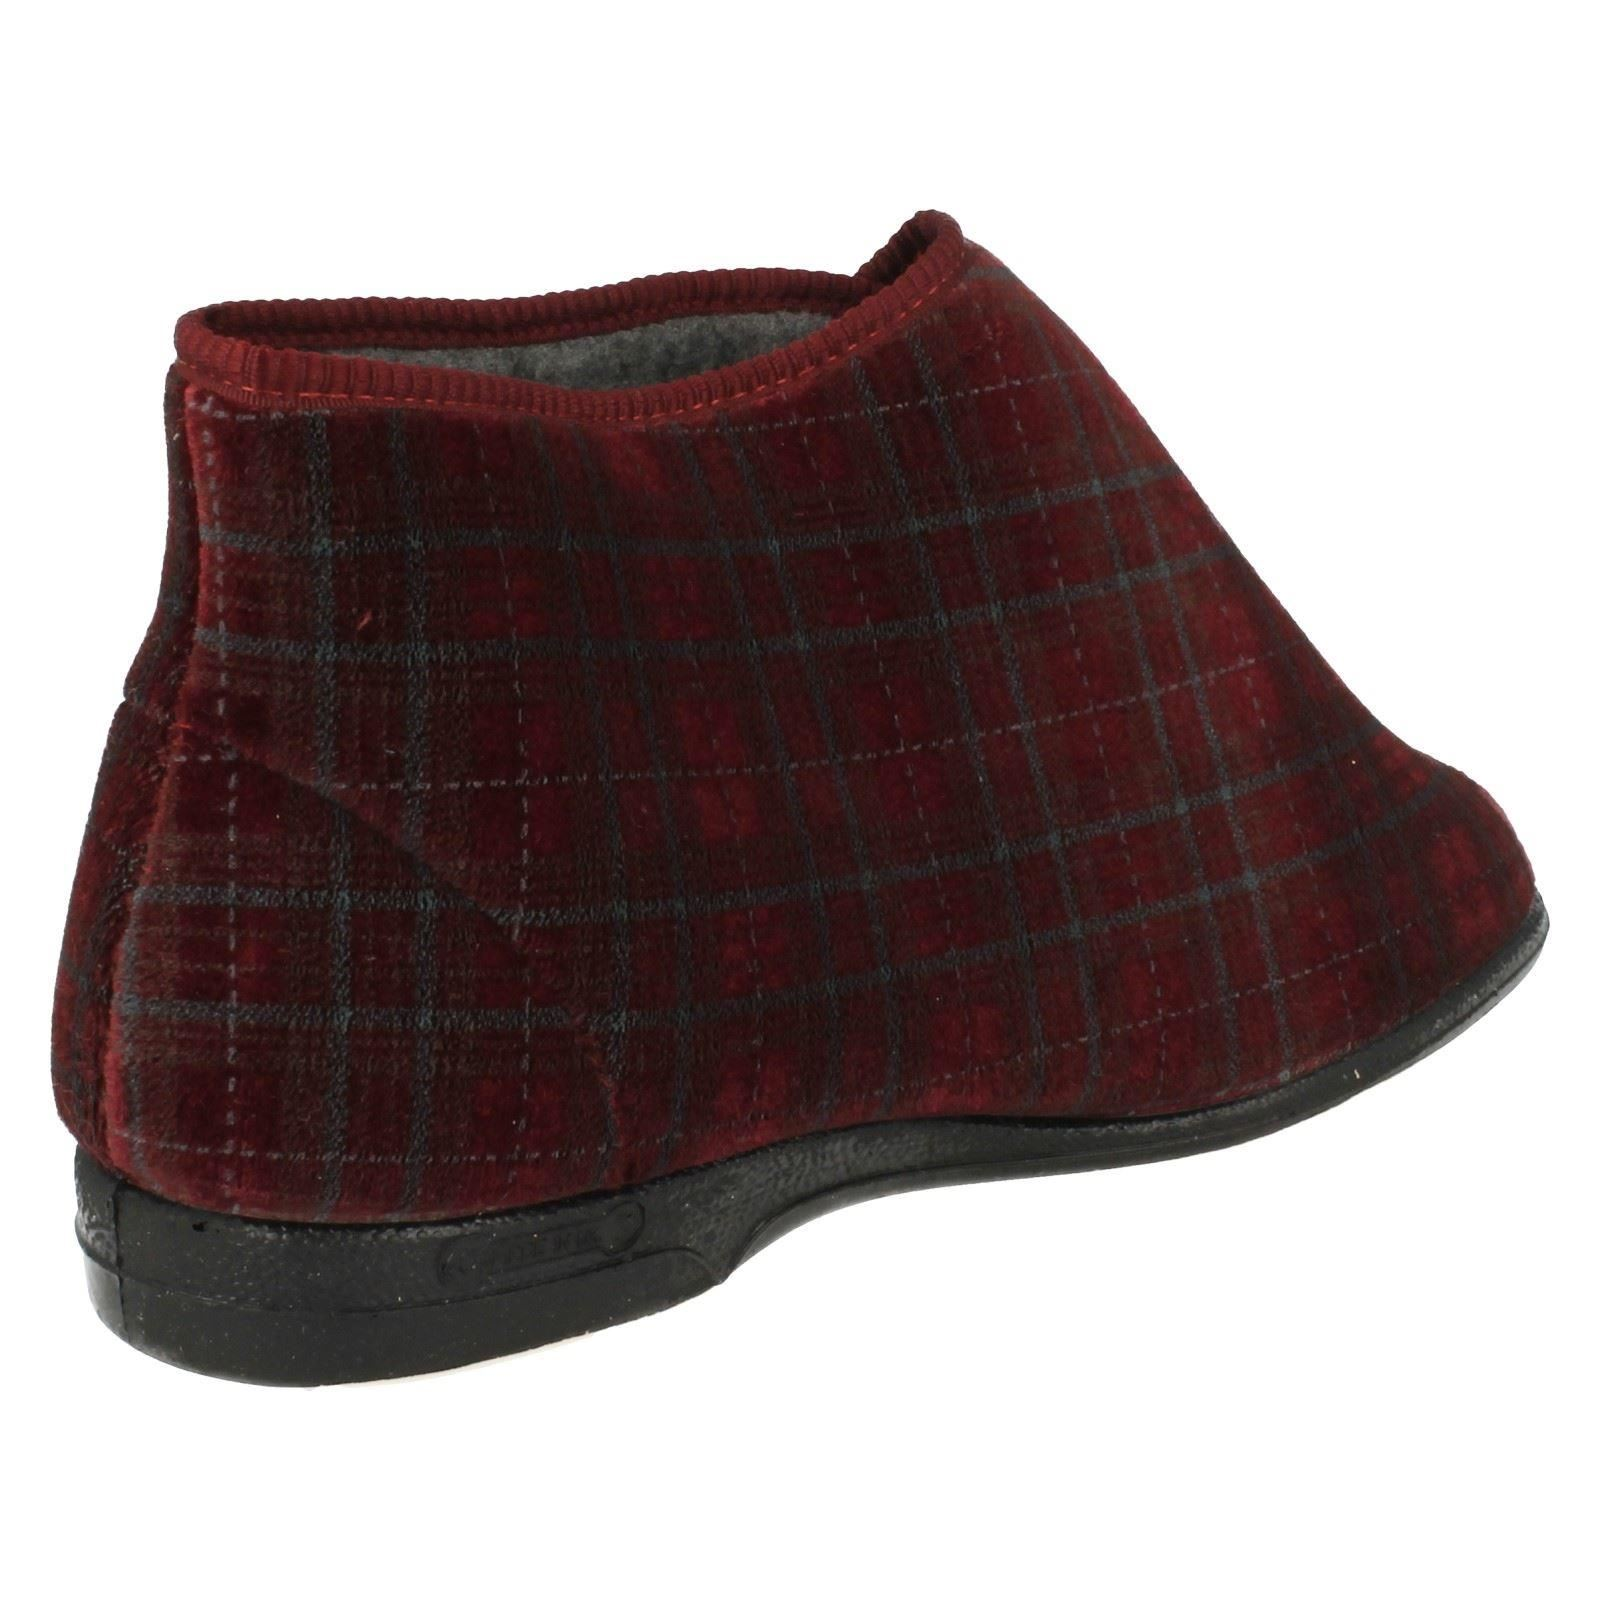 Mens-Balmoral-Bootee-Slipper-Thomas